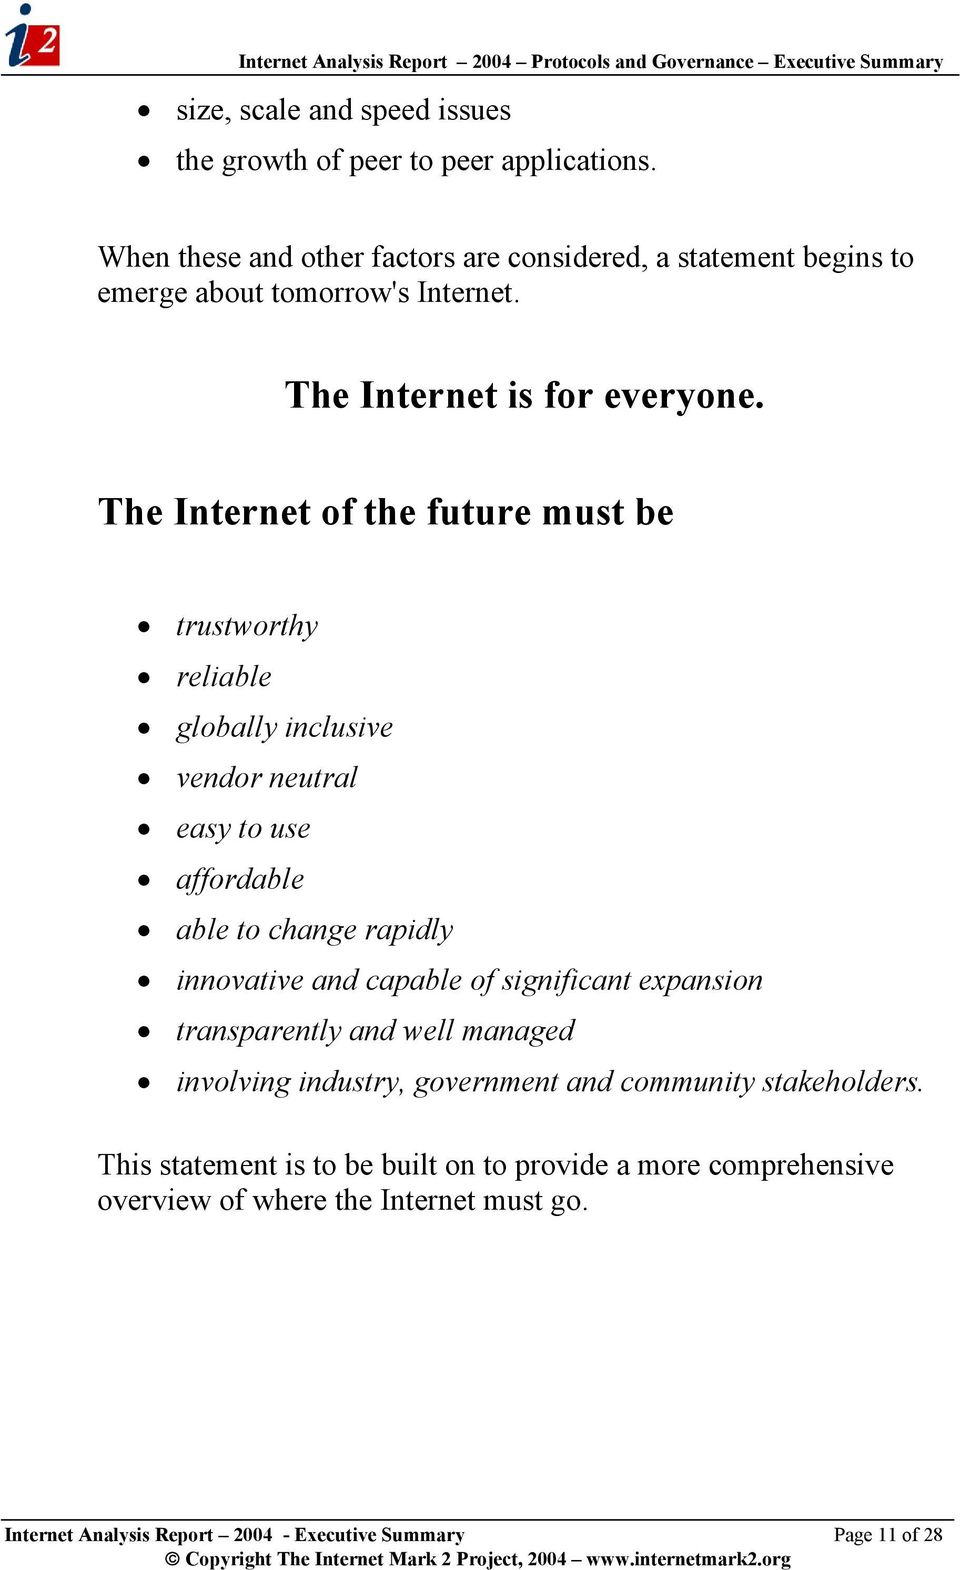 The Internet of the future must be trustworthy reliable globally inclusive vendor neutral easy to use affordable able to change rapidly innovative and capable